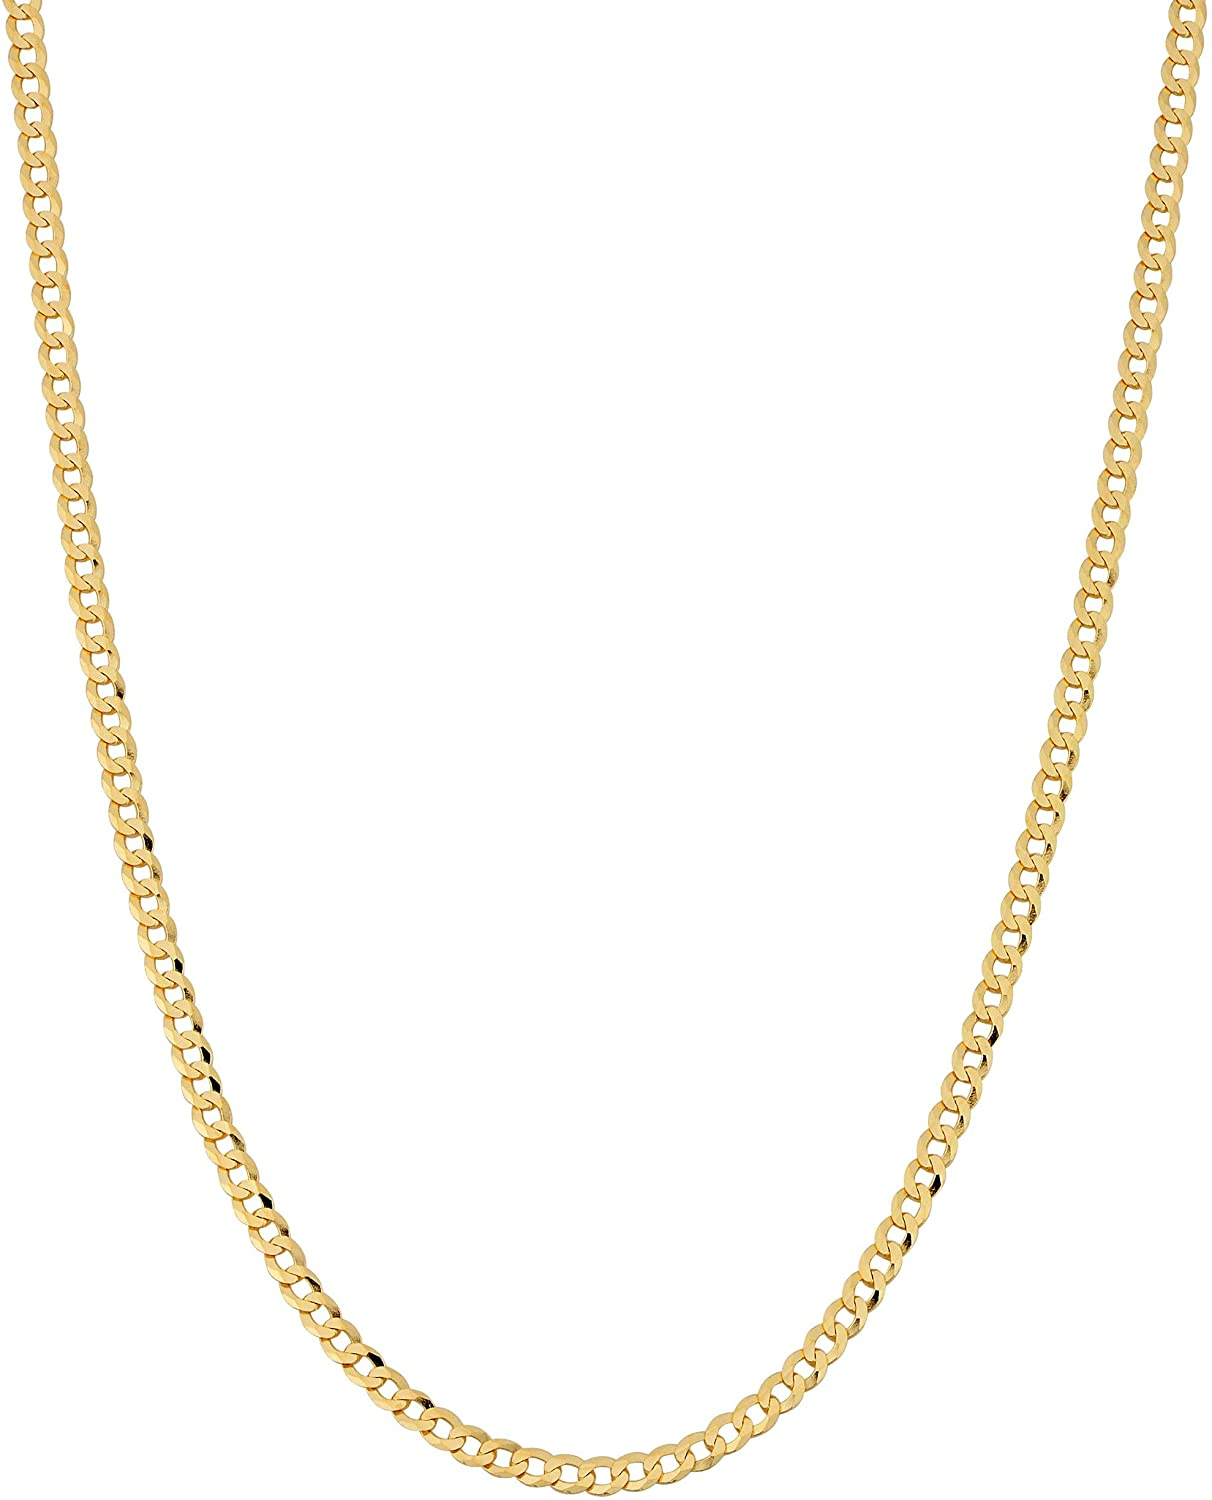 ARGENTO REALE 14K Gold 2.25MM Curb/Cuban Chain Necklace, 14K Gold Chain, 14K Dainty Necklaces